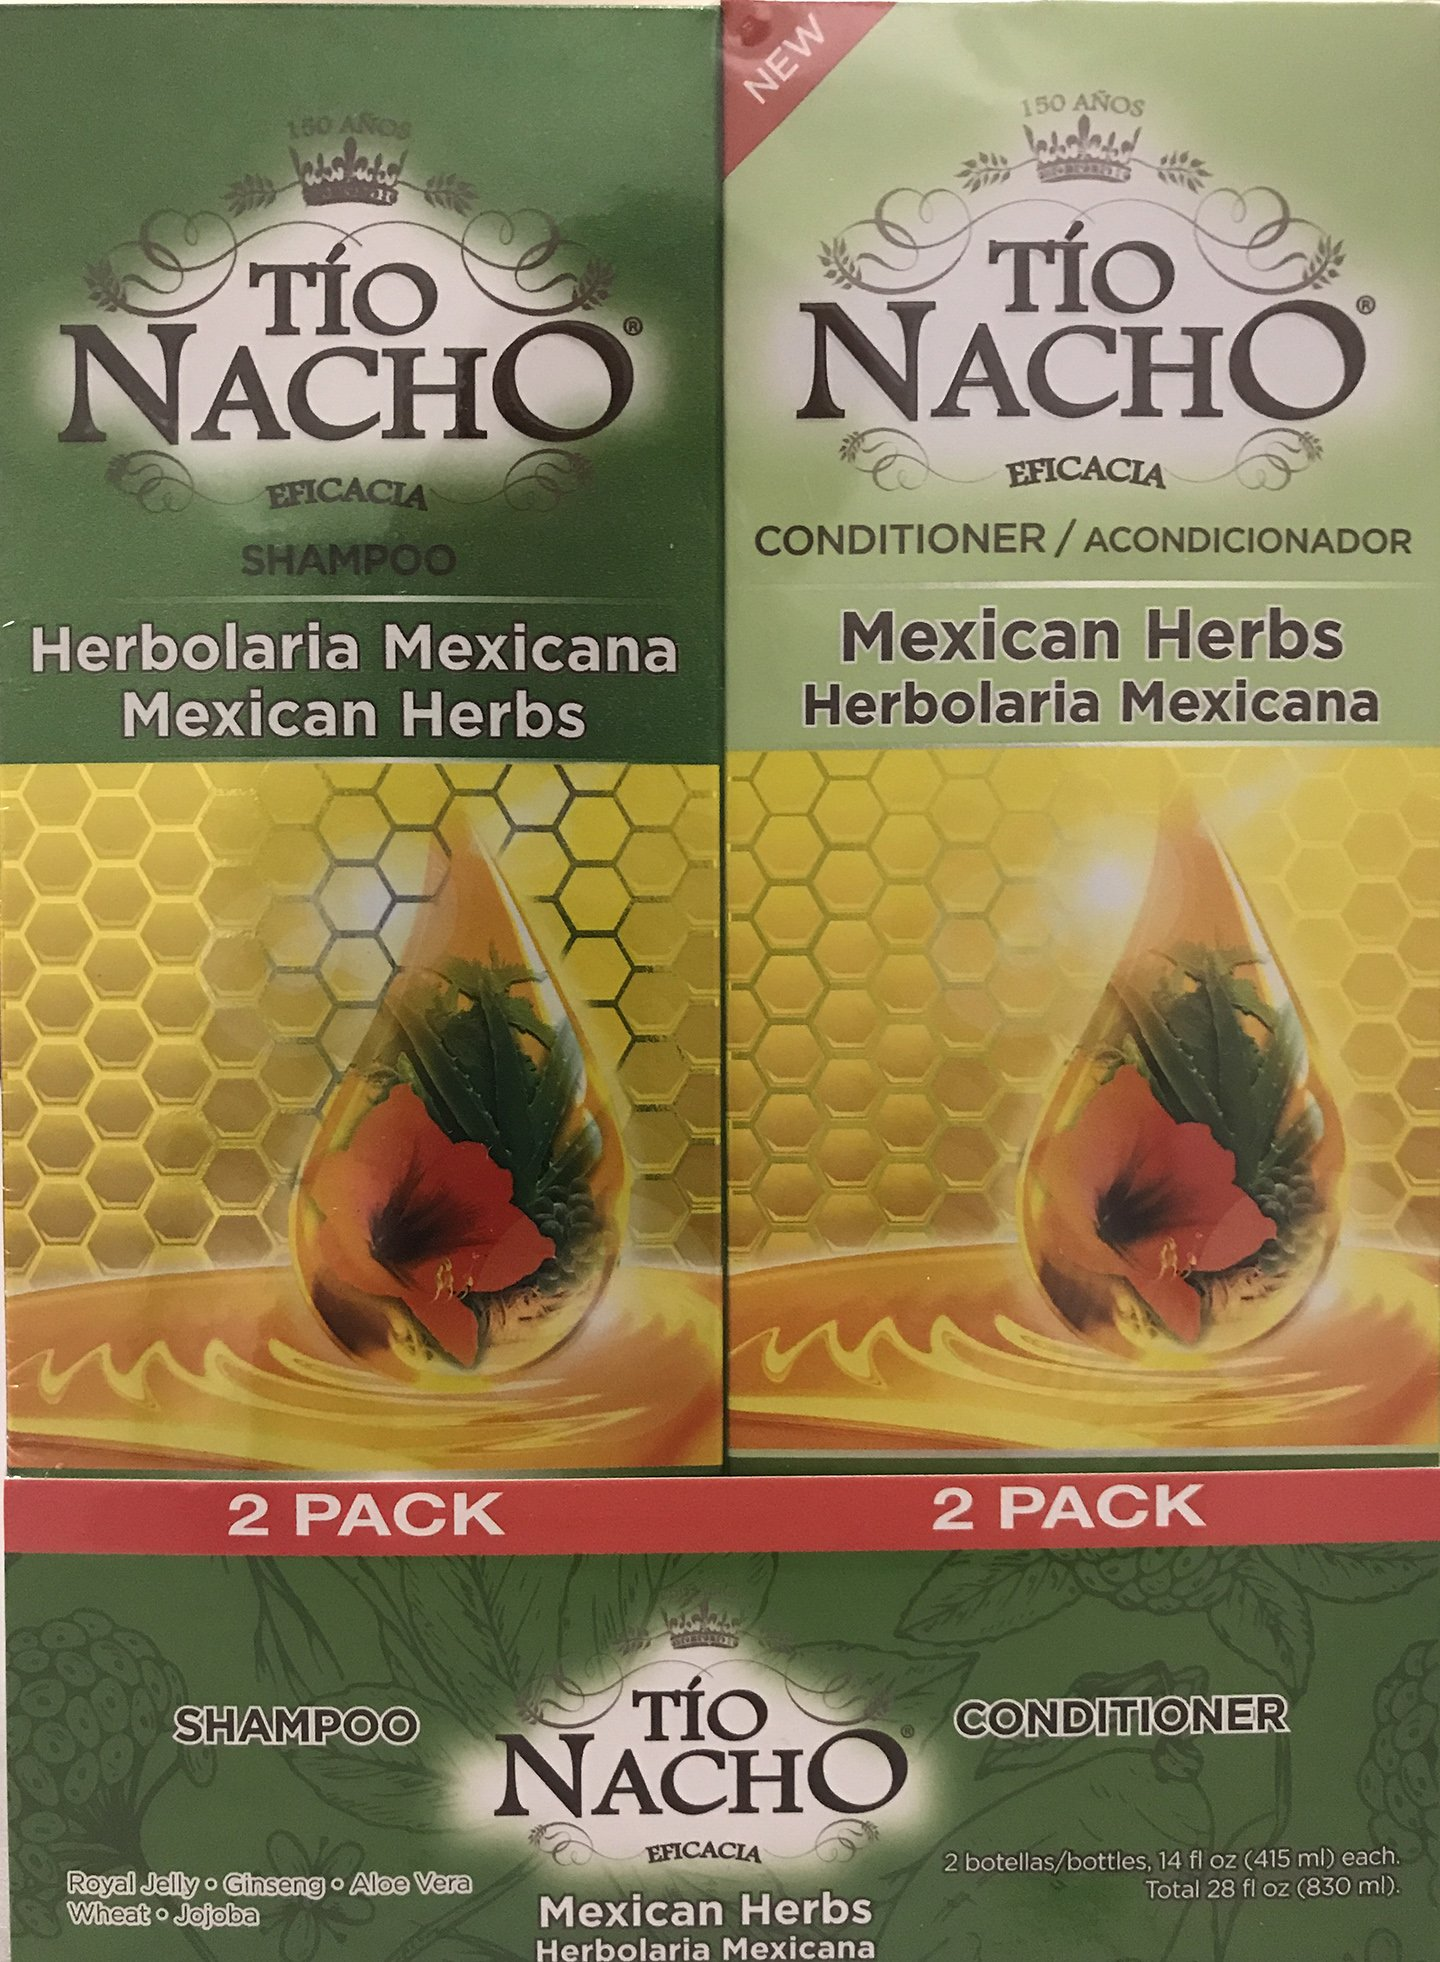 TIO NACHO Mexican Herbs Shampoo and Conditioner, Twin Pack (2 Pack 14 fl.